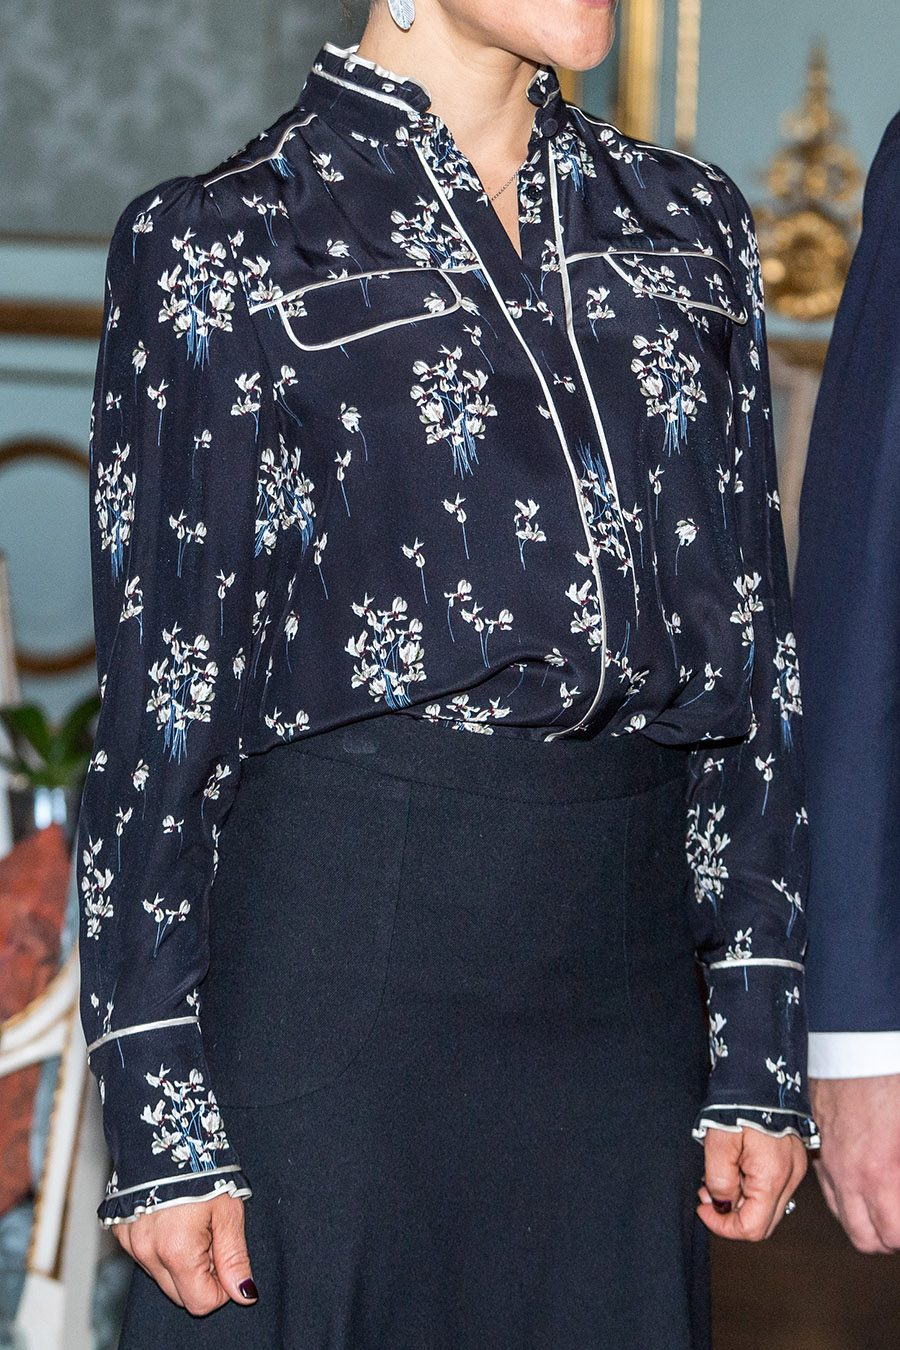 Details of the Skirt provided by Pelle T Nilsson